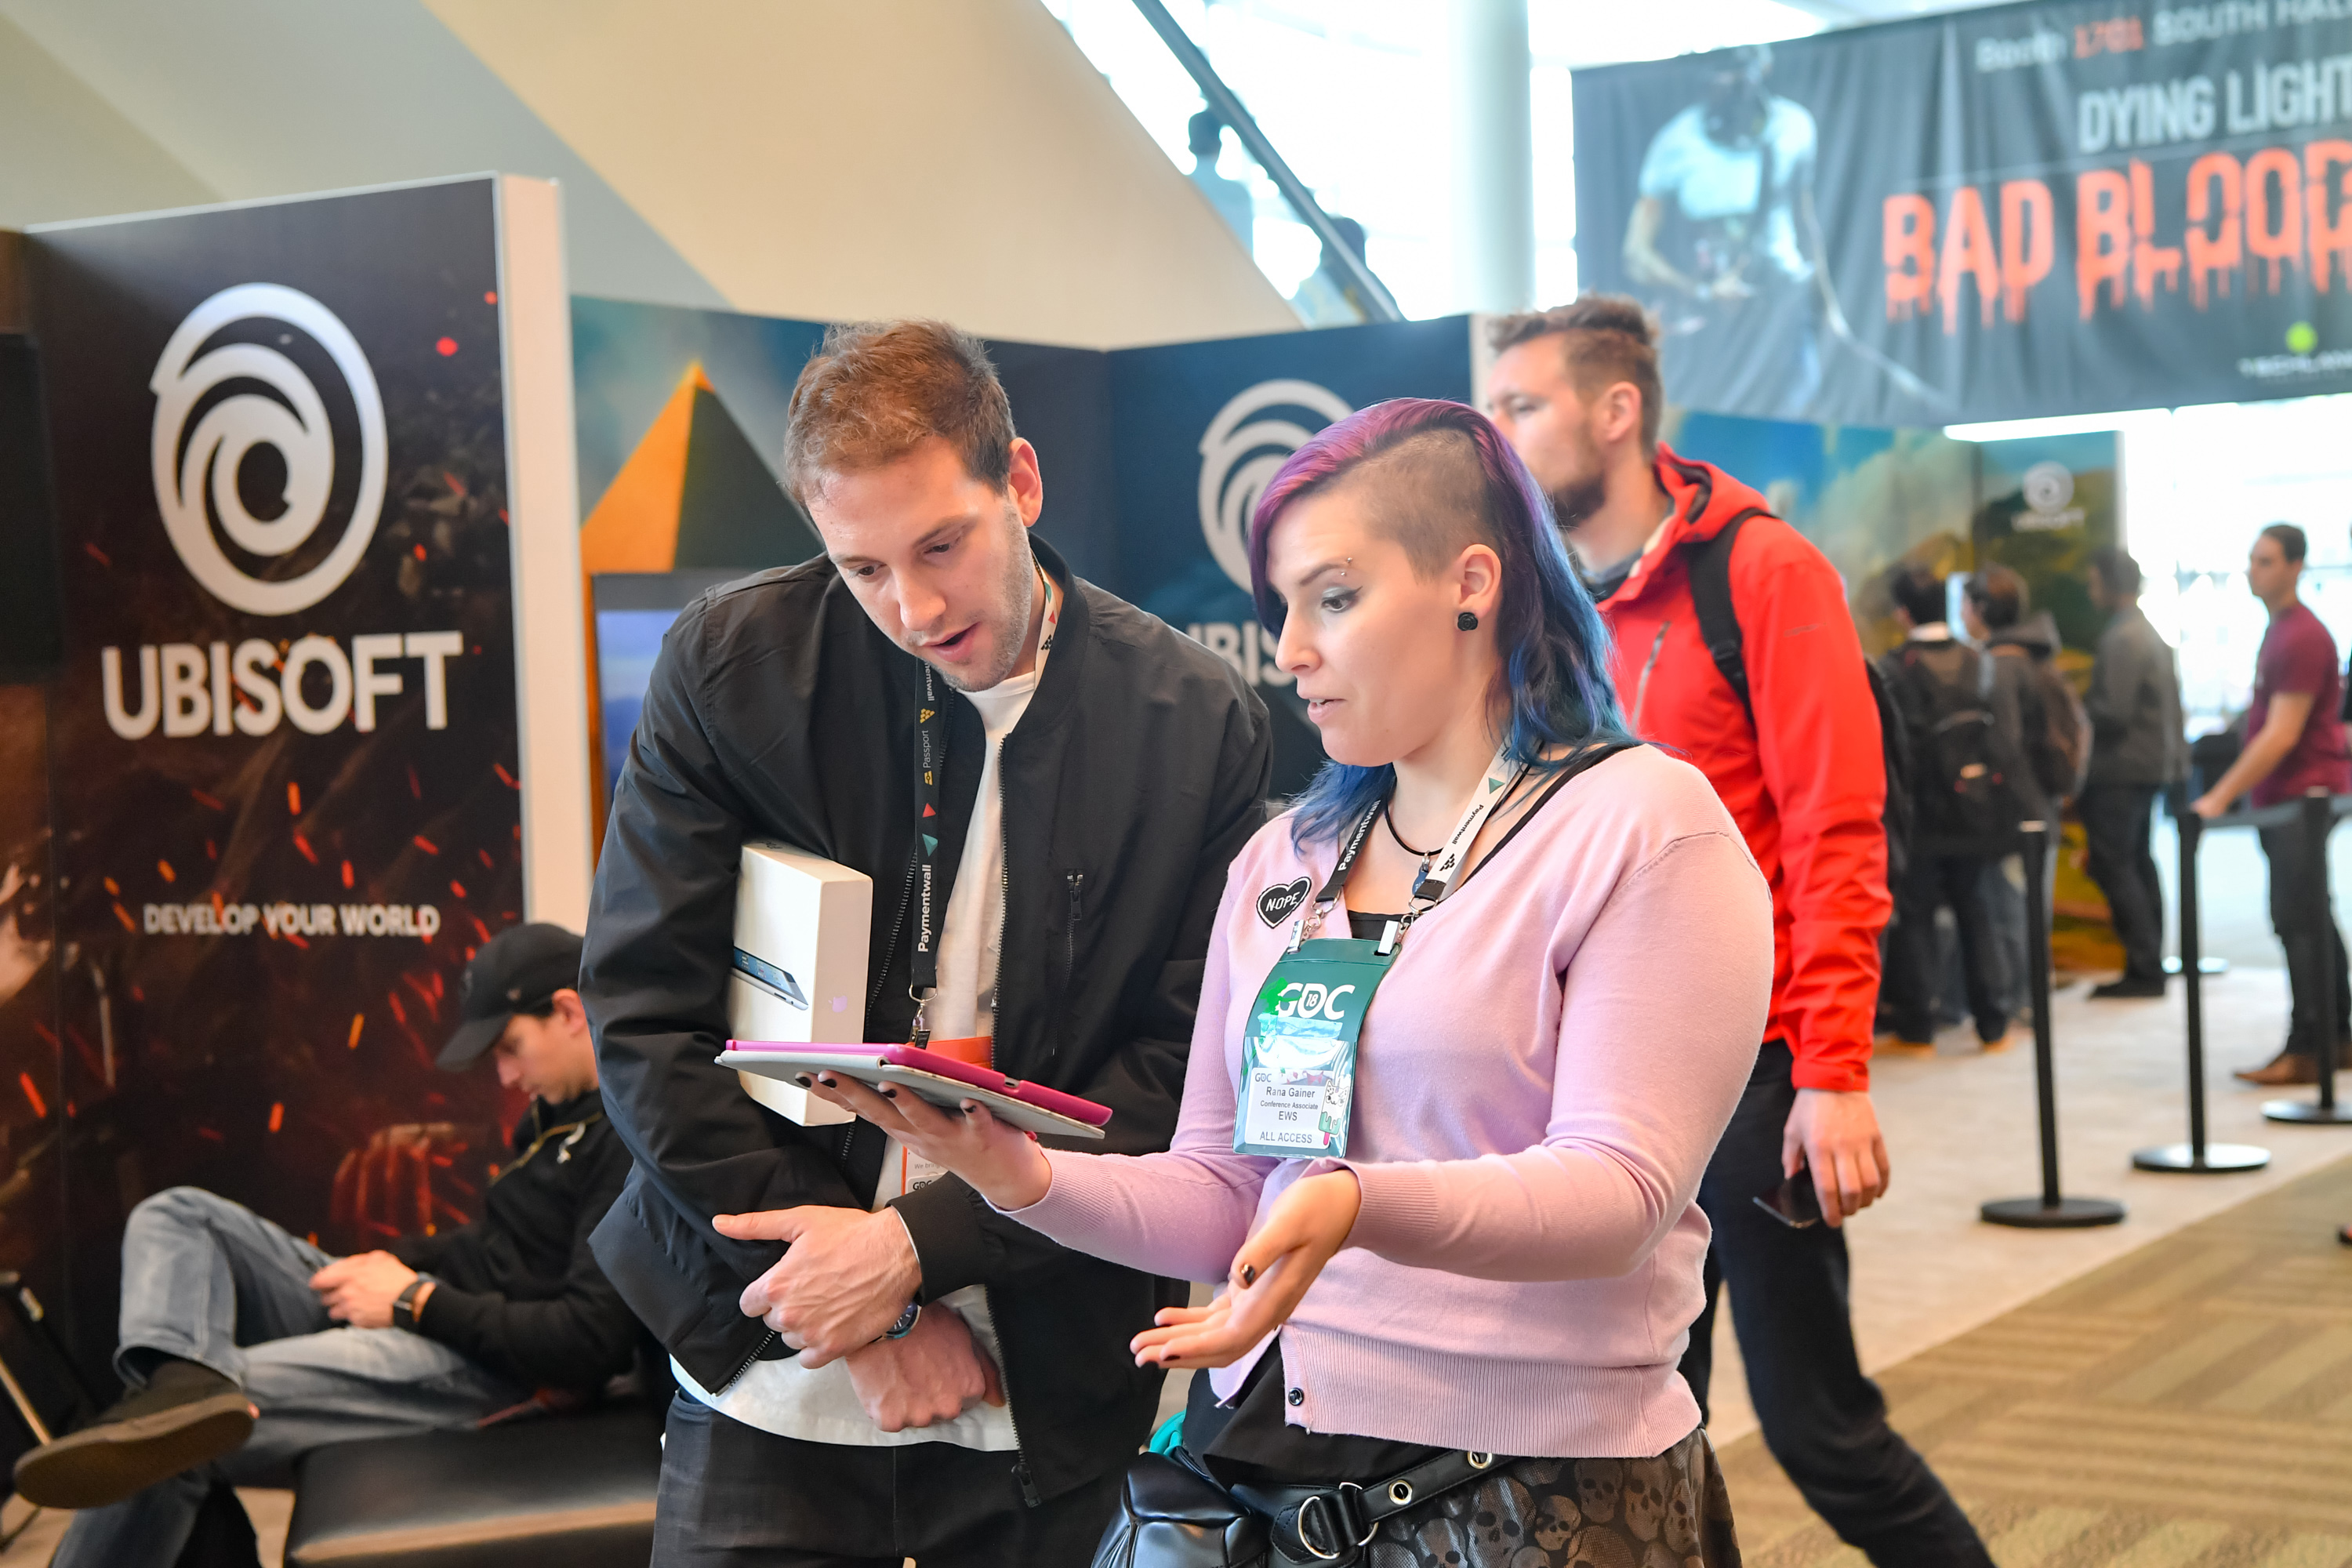 Attendees of the Game Developers Conference